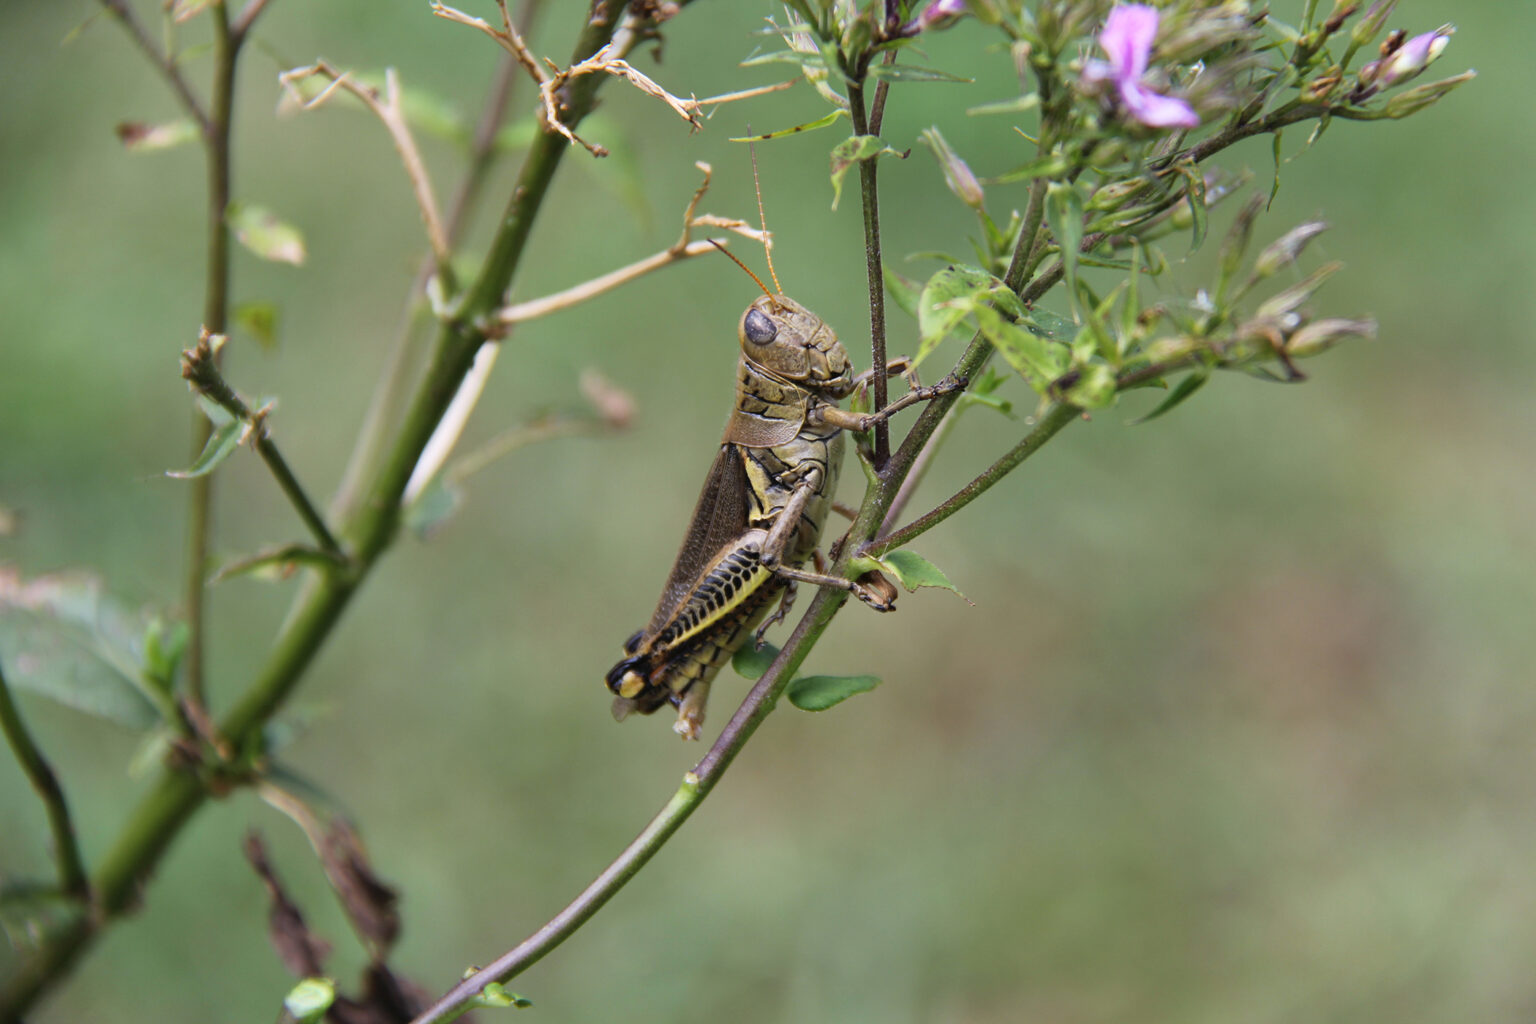 Grasshopper (file photo by Sharon Dowdy)